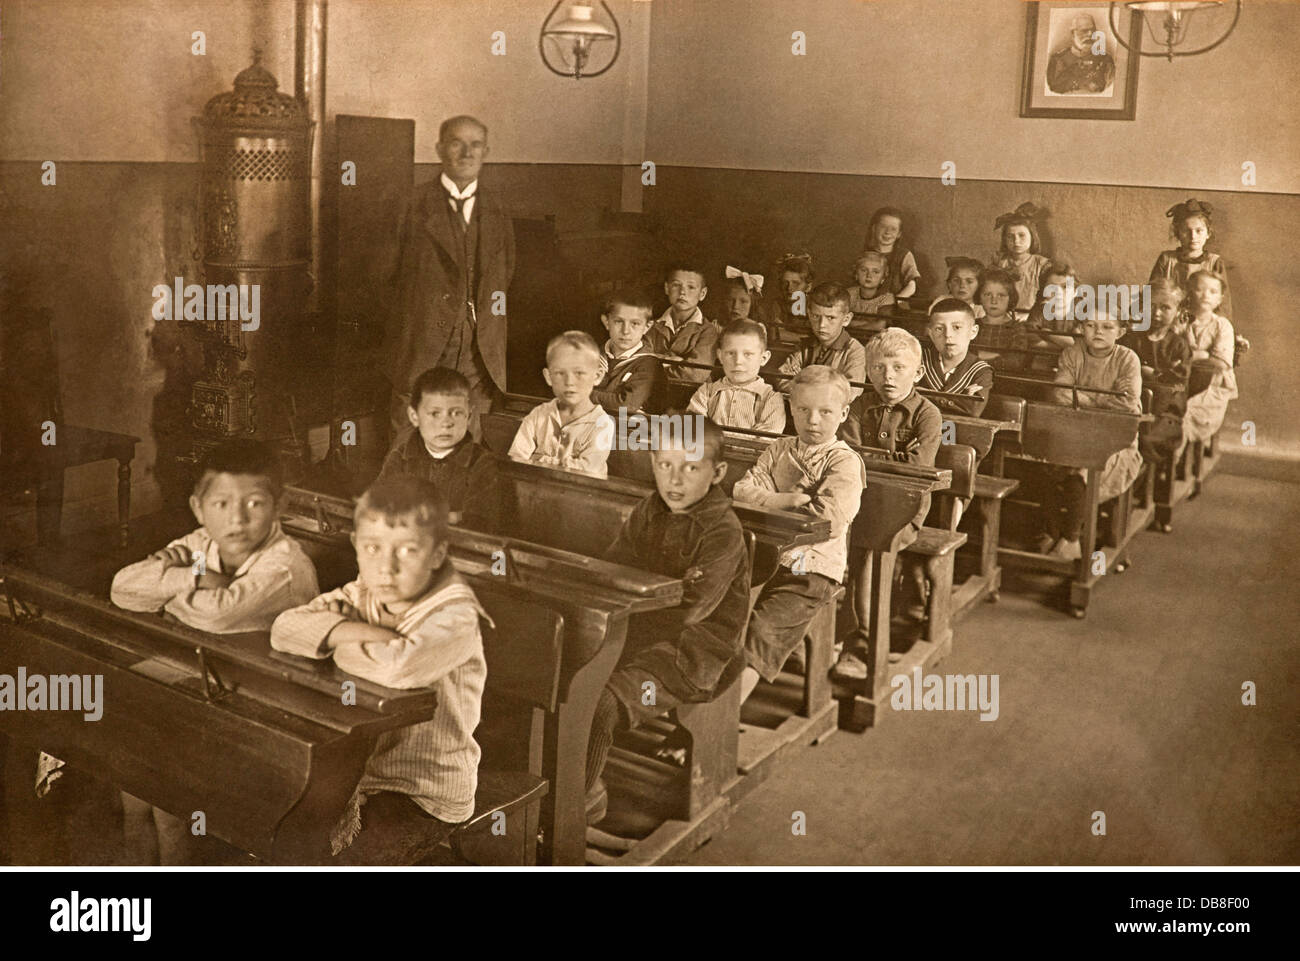 pedagogy, school, class, boys and girls sitting separate, picture of the last Bavarian King Ludwig II in the background, - Stock Image